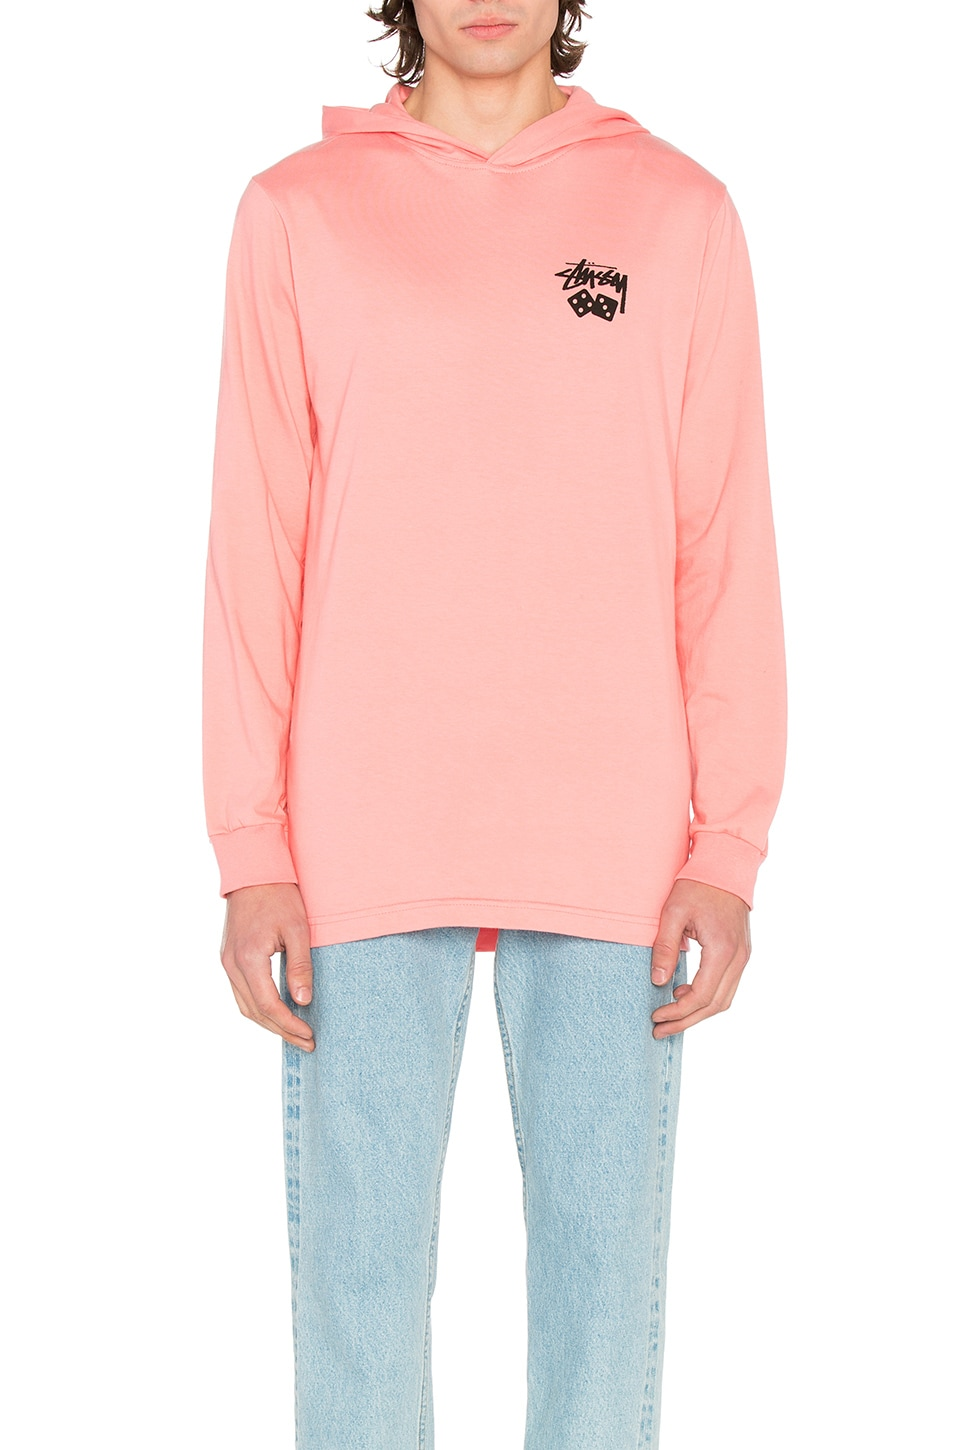 Dice Hooded Tee by Stussy